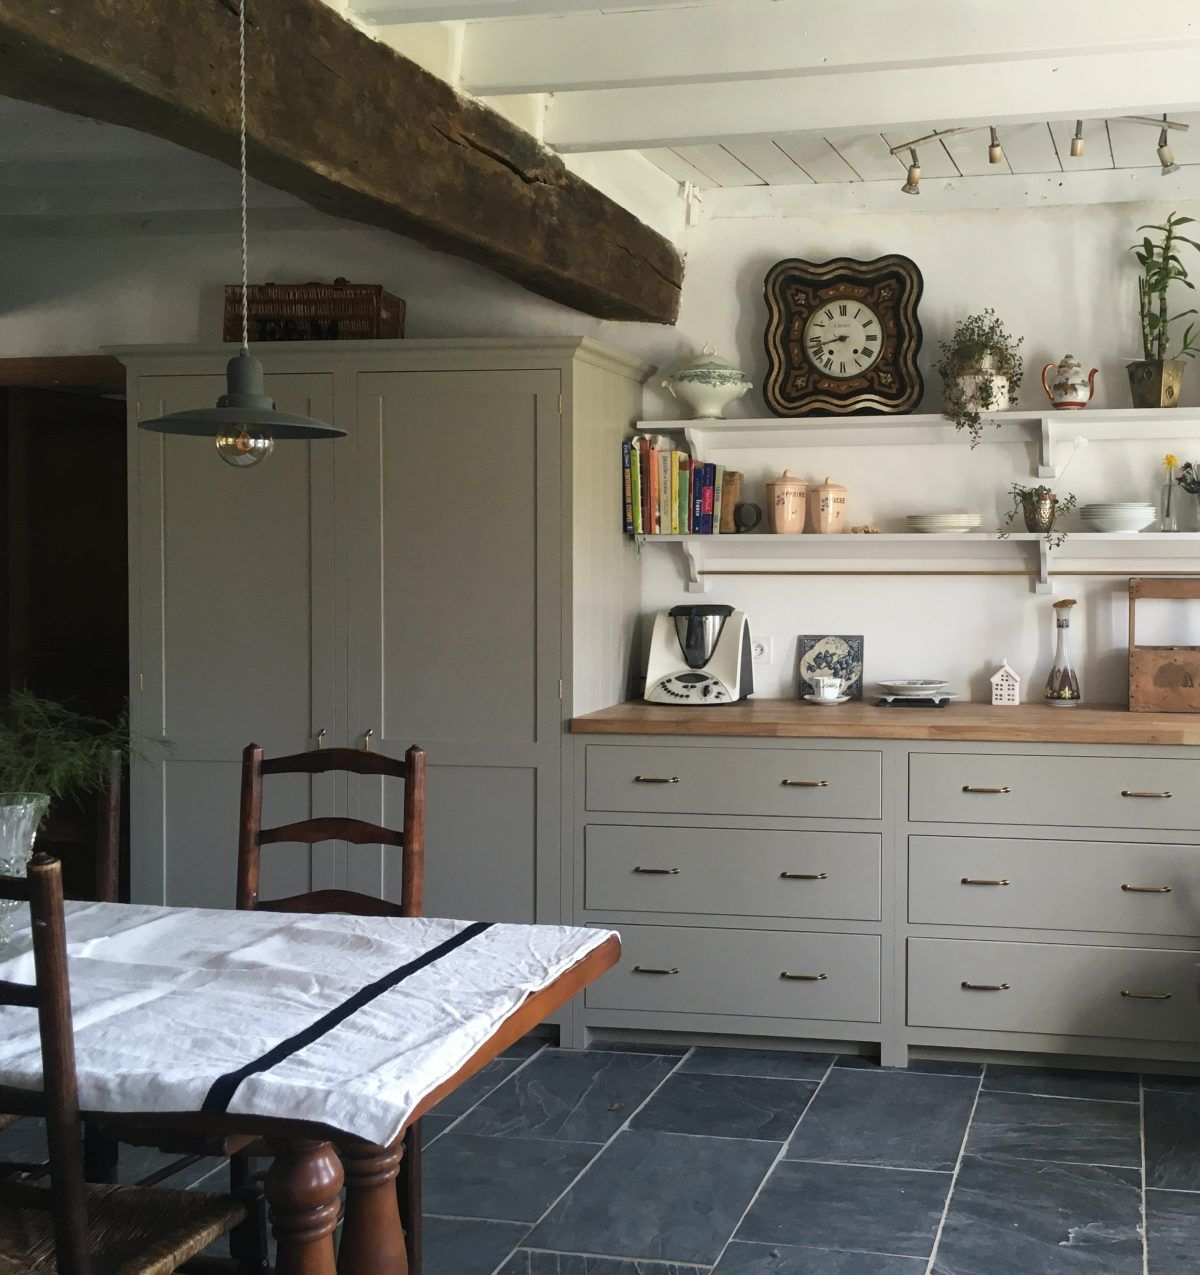 A truly authentic deVOL Kitchen in South West France